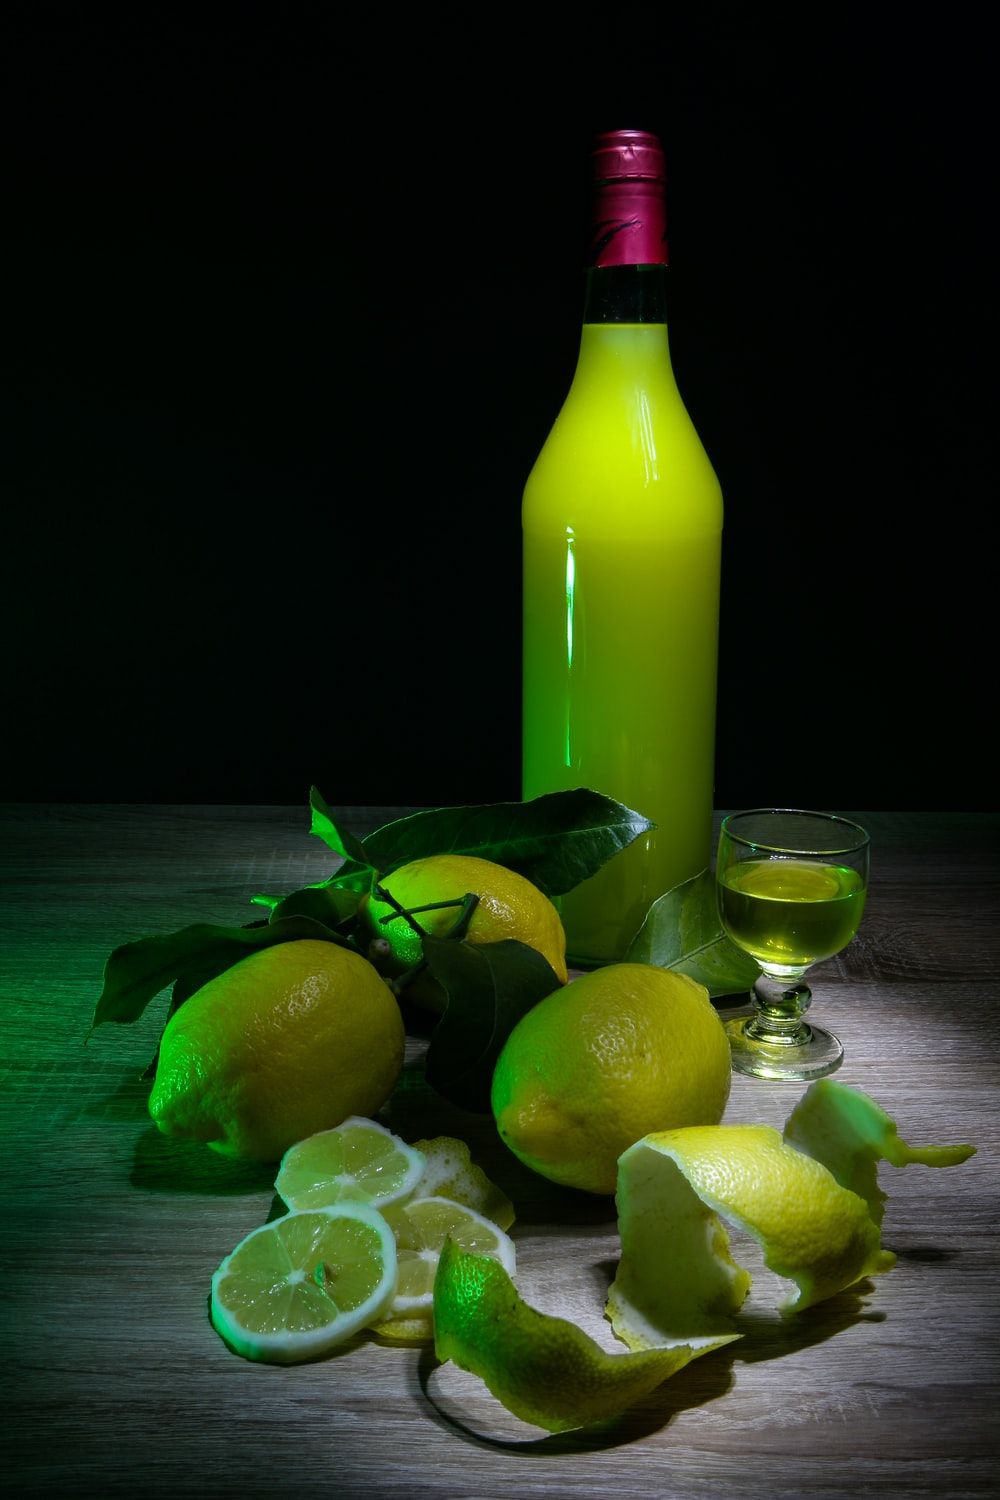 lemon fruits and yellow glass bottle